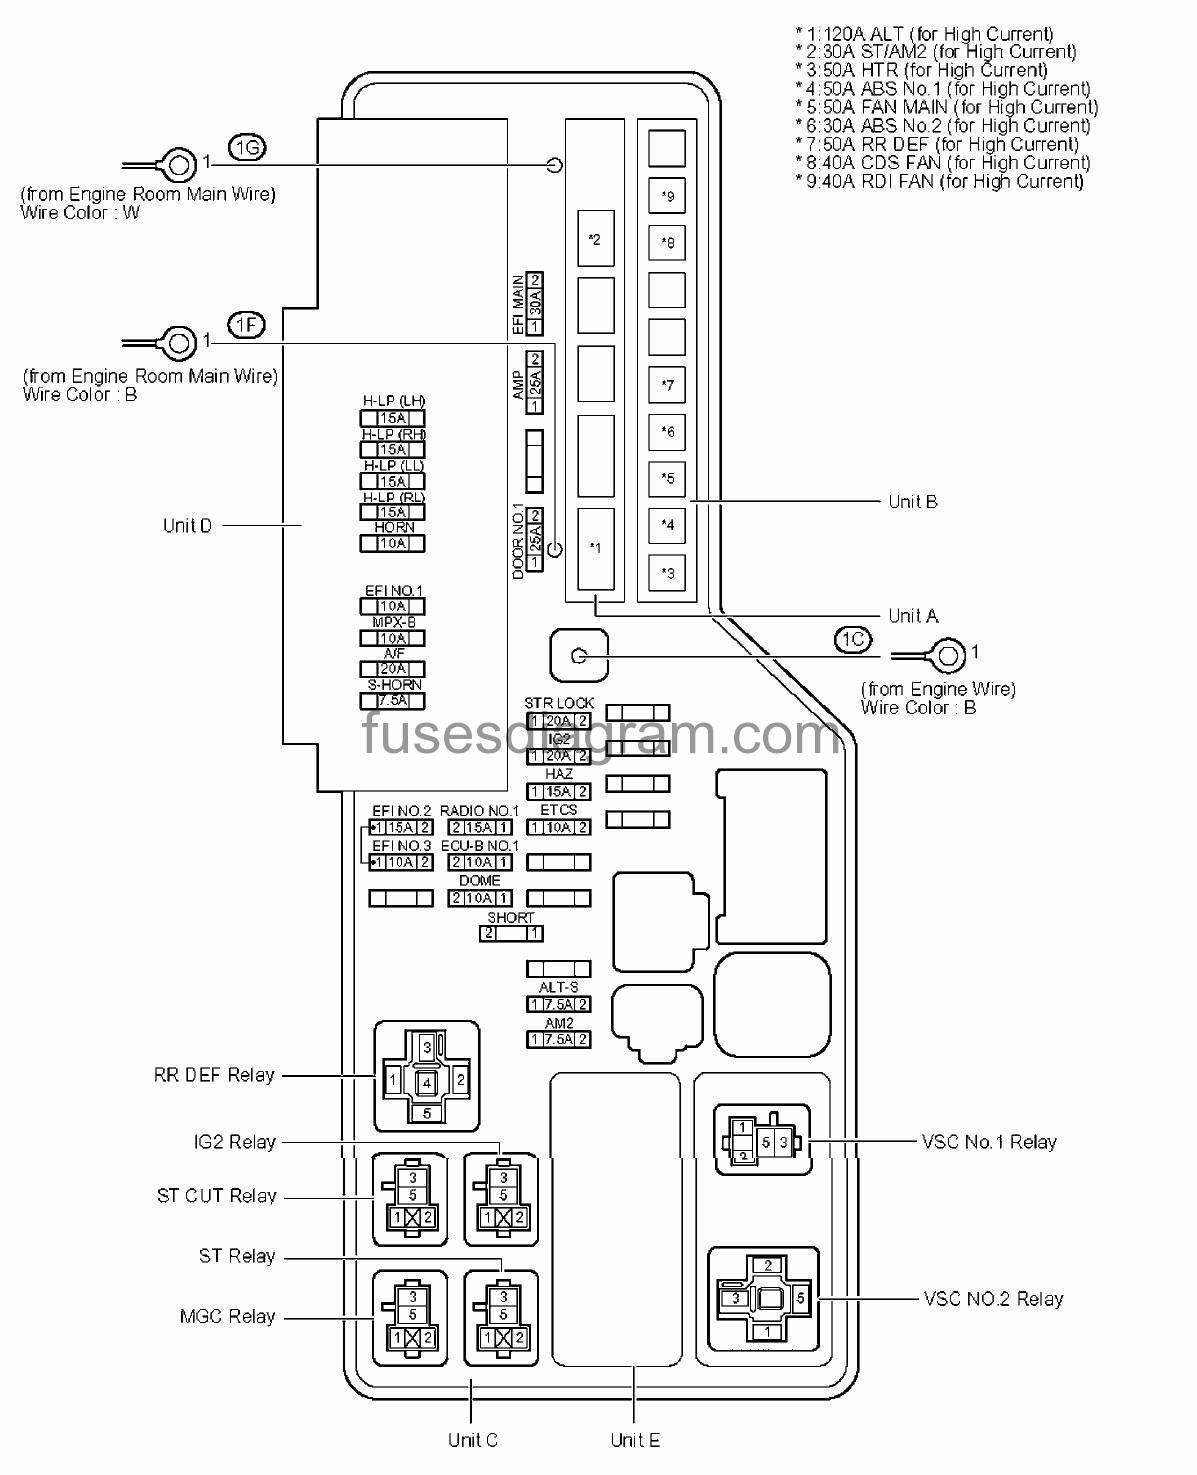 hight resolution of fuse box toyota camry 2000 simple wiring diagram 2007 tahoe fuse box location 2007 camry fuse